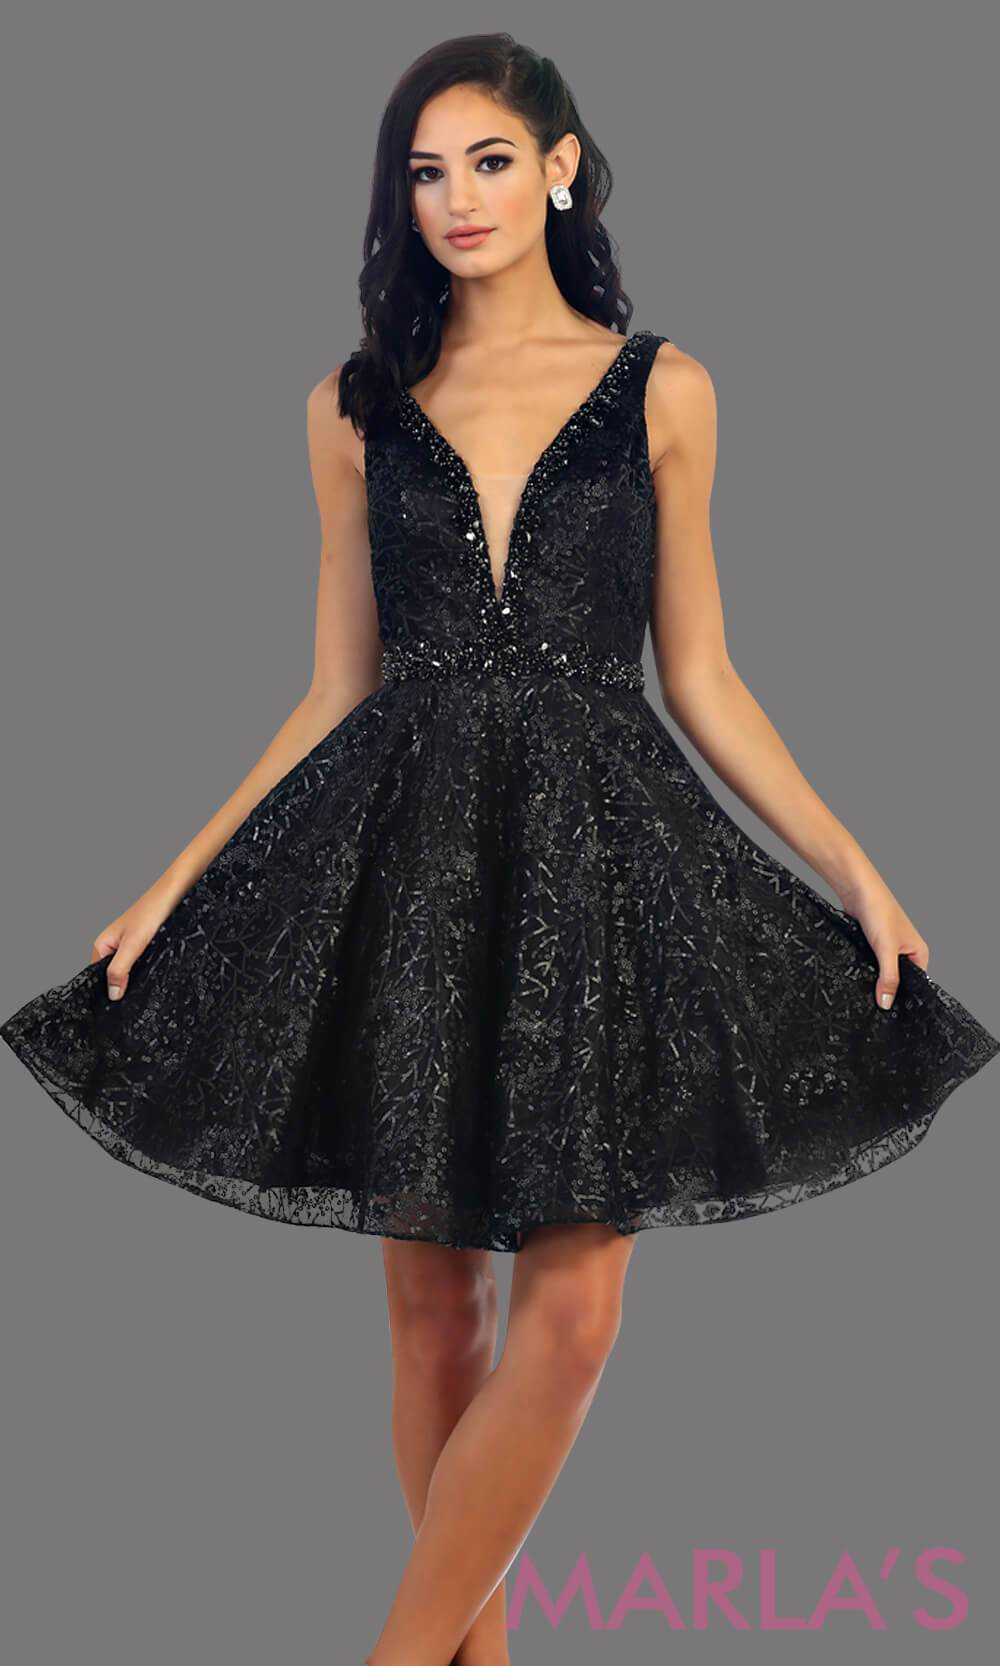 7438-Short black dress with deep V neck and back. This is a perfect grade 8 grad dress, graduation dress, black wedding guest dress, short prom dress or even damas dress. Available in plus sizes